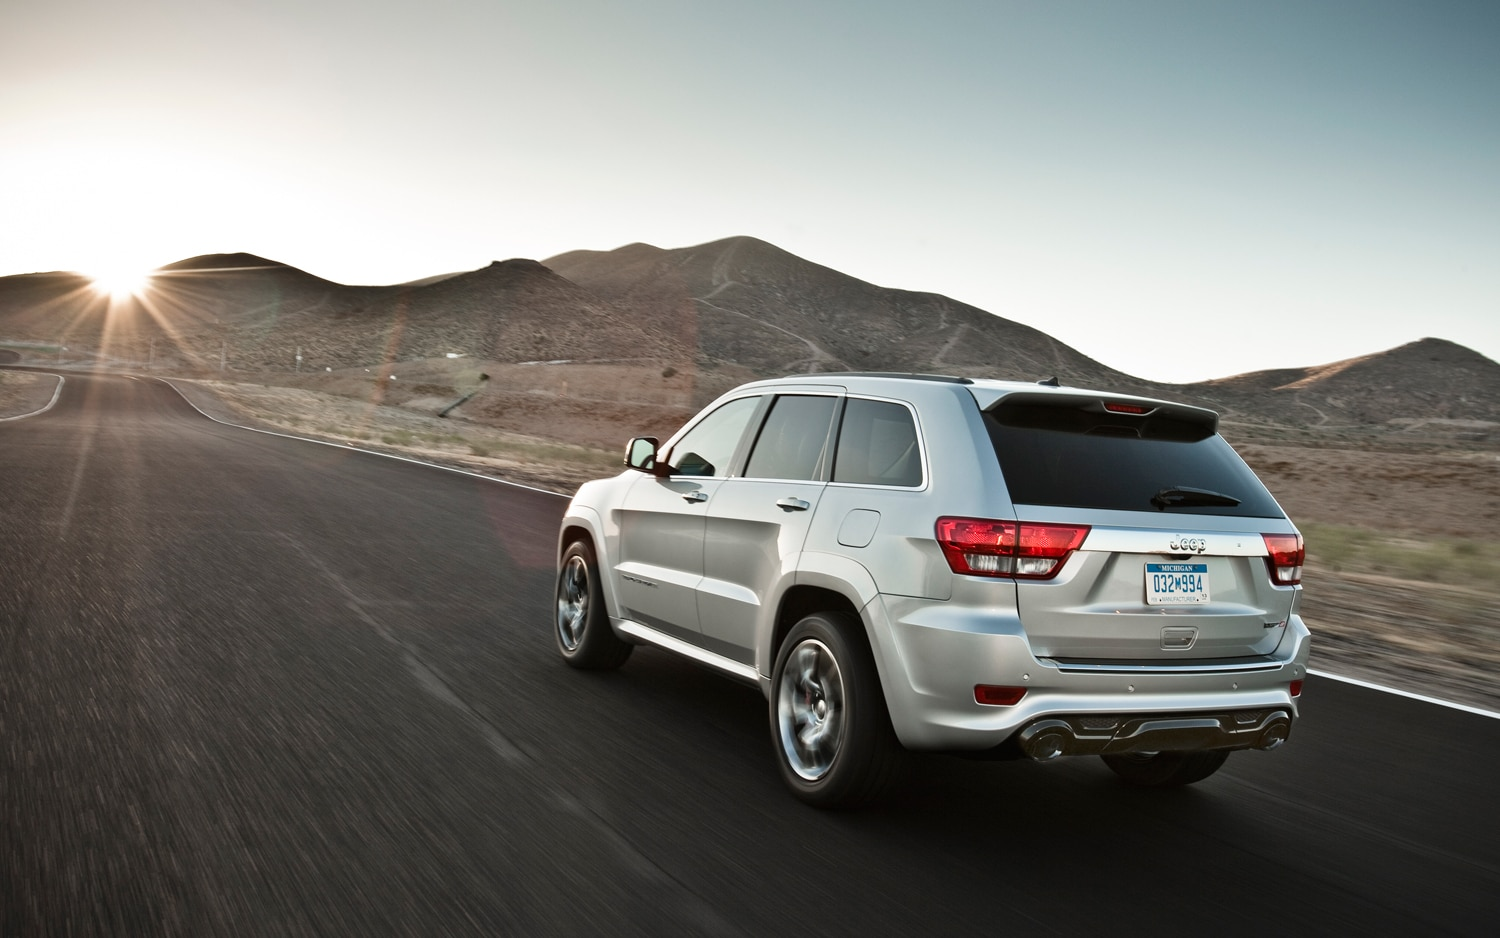 2012 Jeep Grand Cherokee SRT8 Rear View In Motion